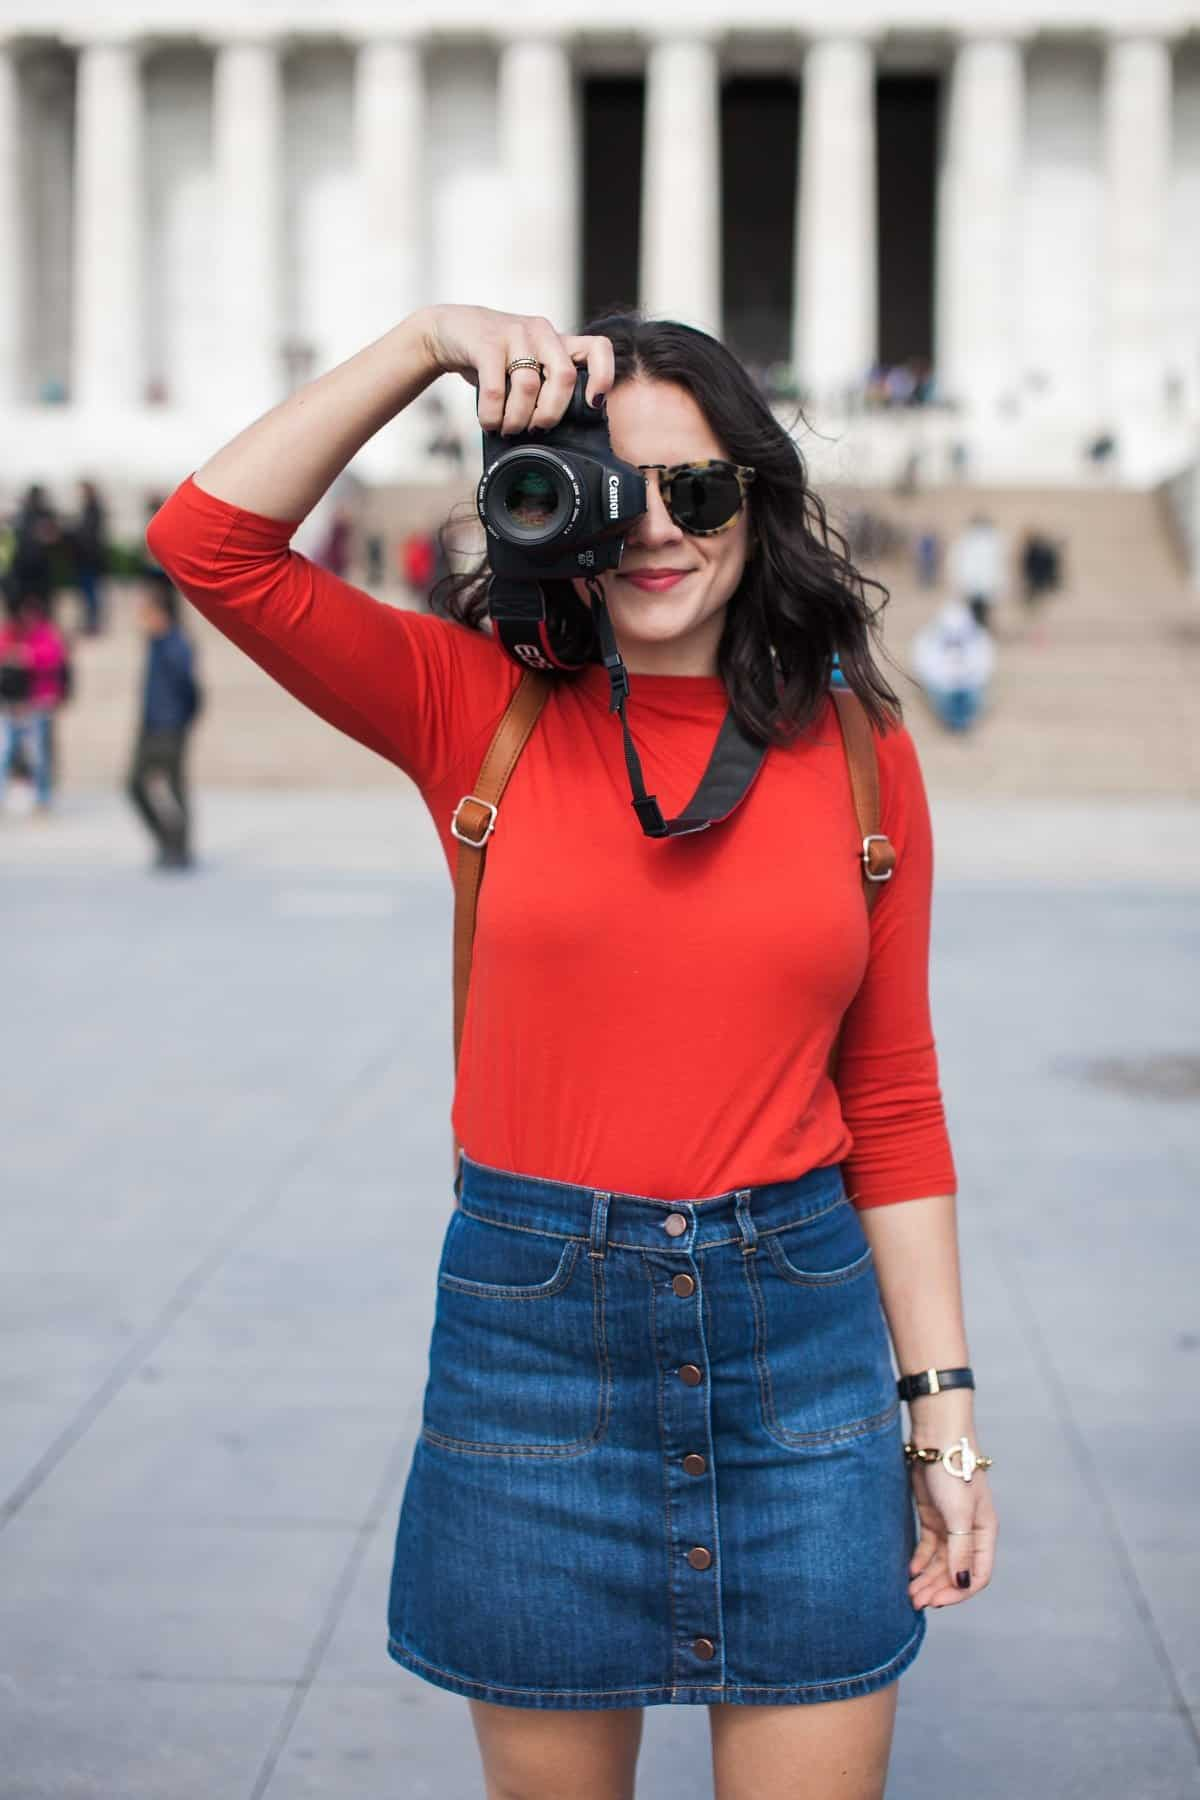 travel outfit ideas - how to travel while still looking cute, what to wear while being a tourist - My Style Vita @mystylevita